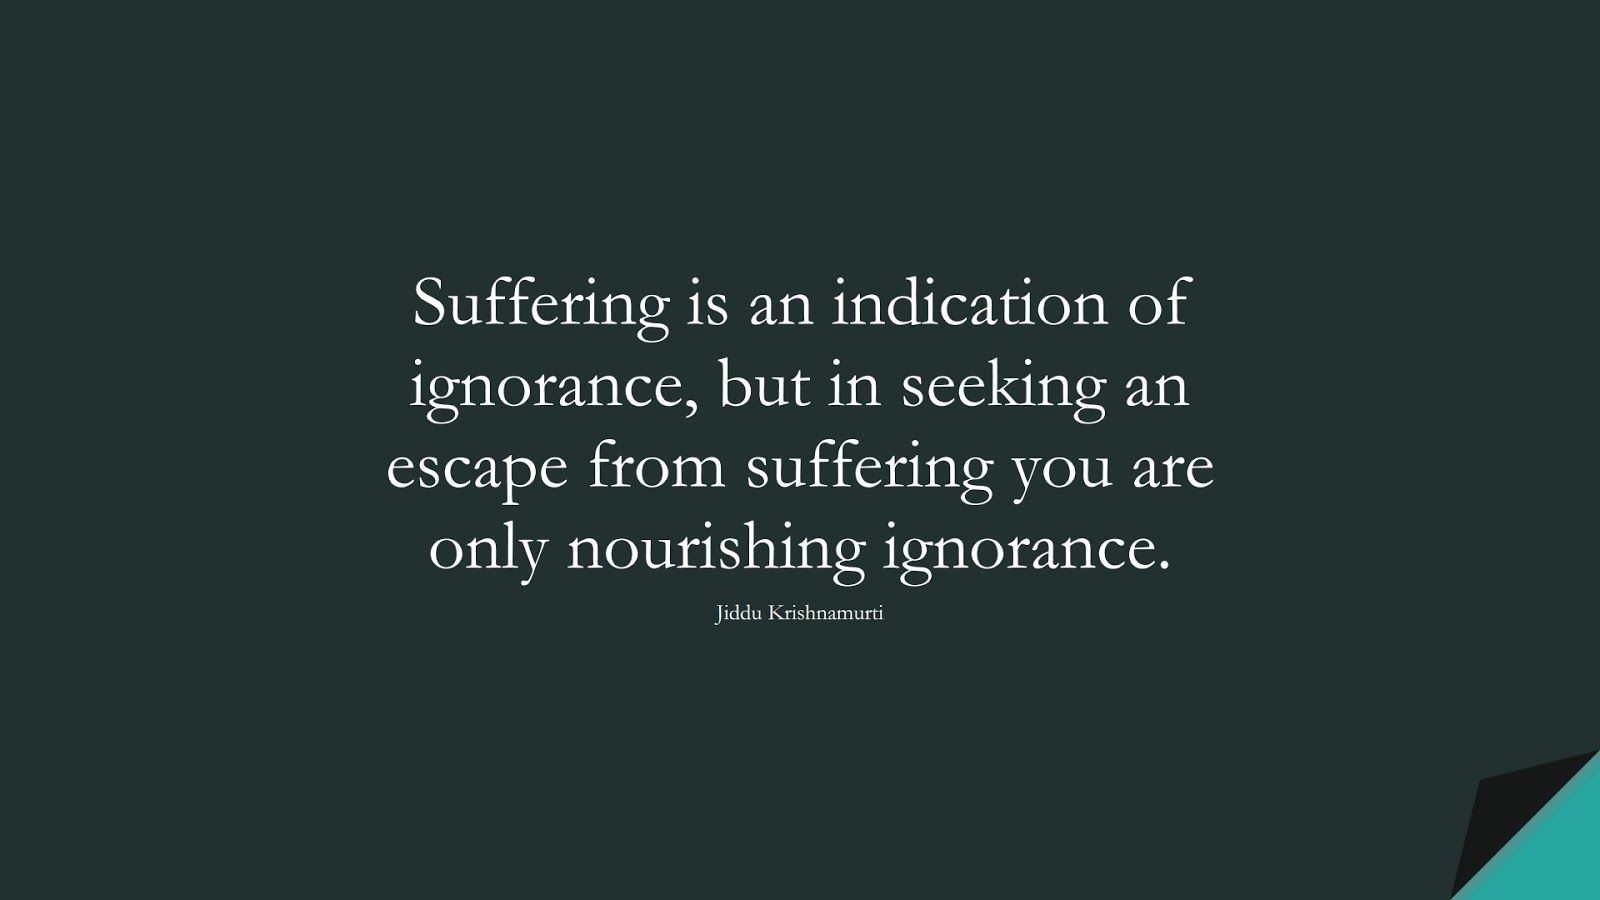 Suffering is an indication of ignorance, but in seeking an escape from suffering you are only nourishing ignorance. (Jiddu Krishnamurti);  #DepressionQuotes